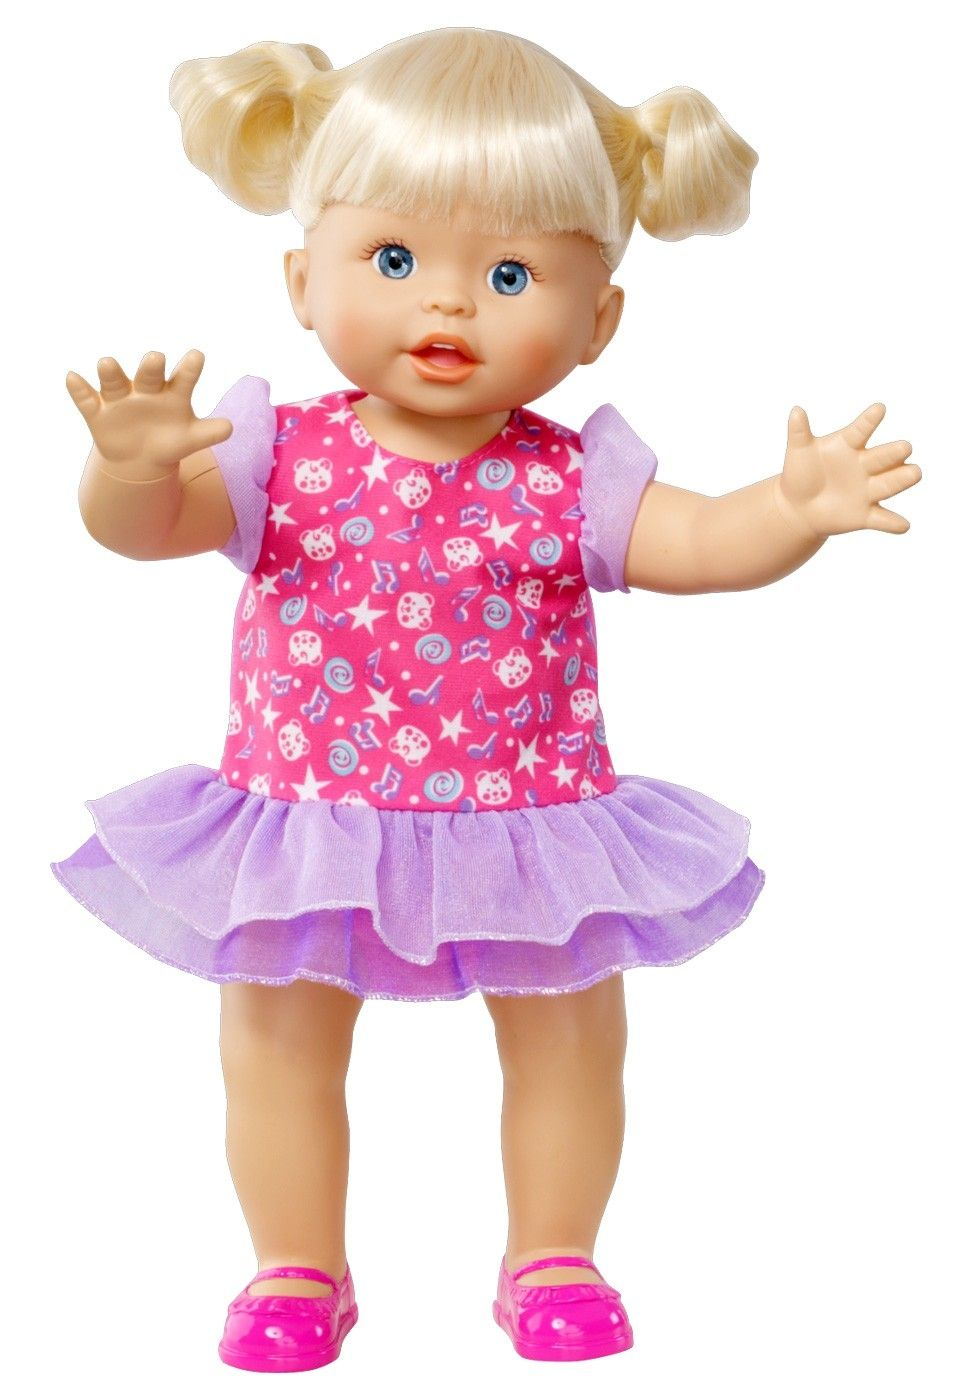 LITTLE MOMMY Dancy Dancy Doll: This engaging doll is ready to dance ...